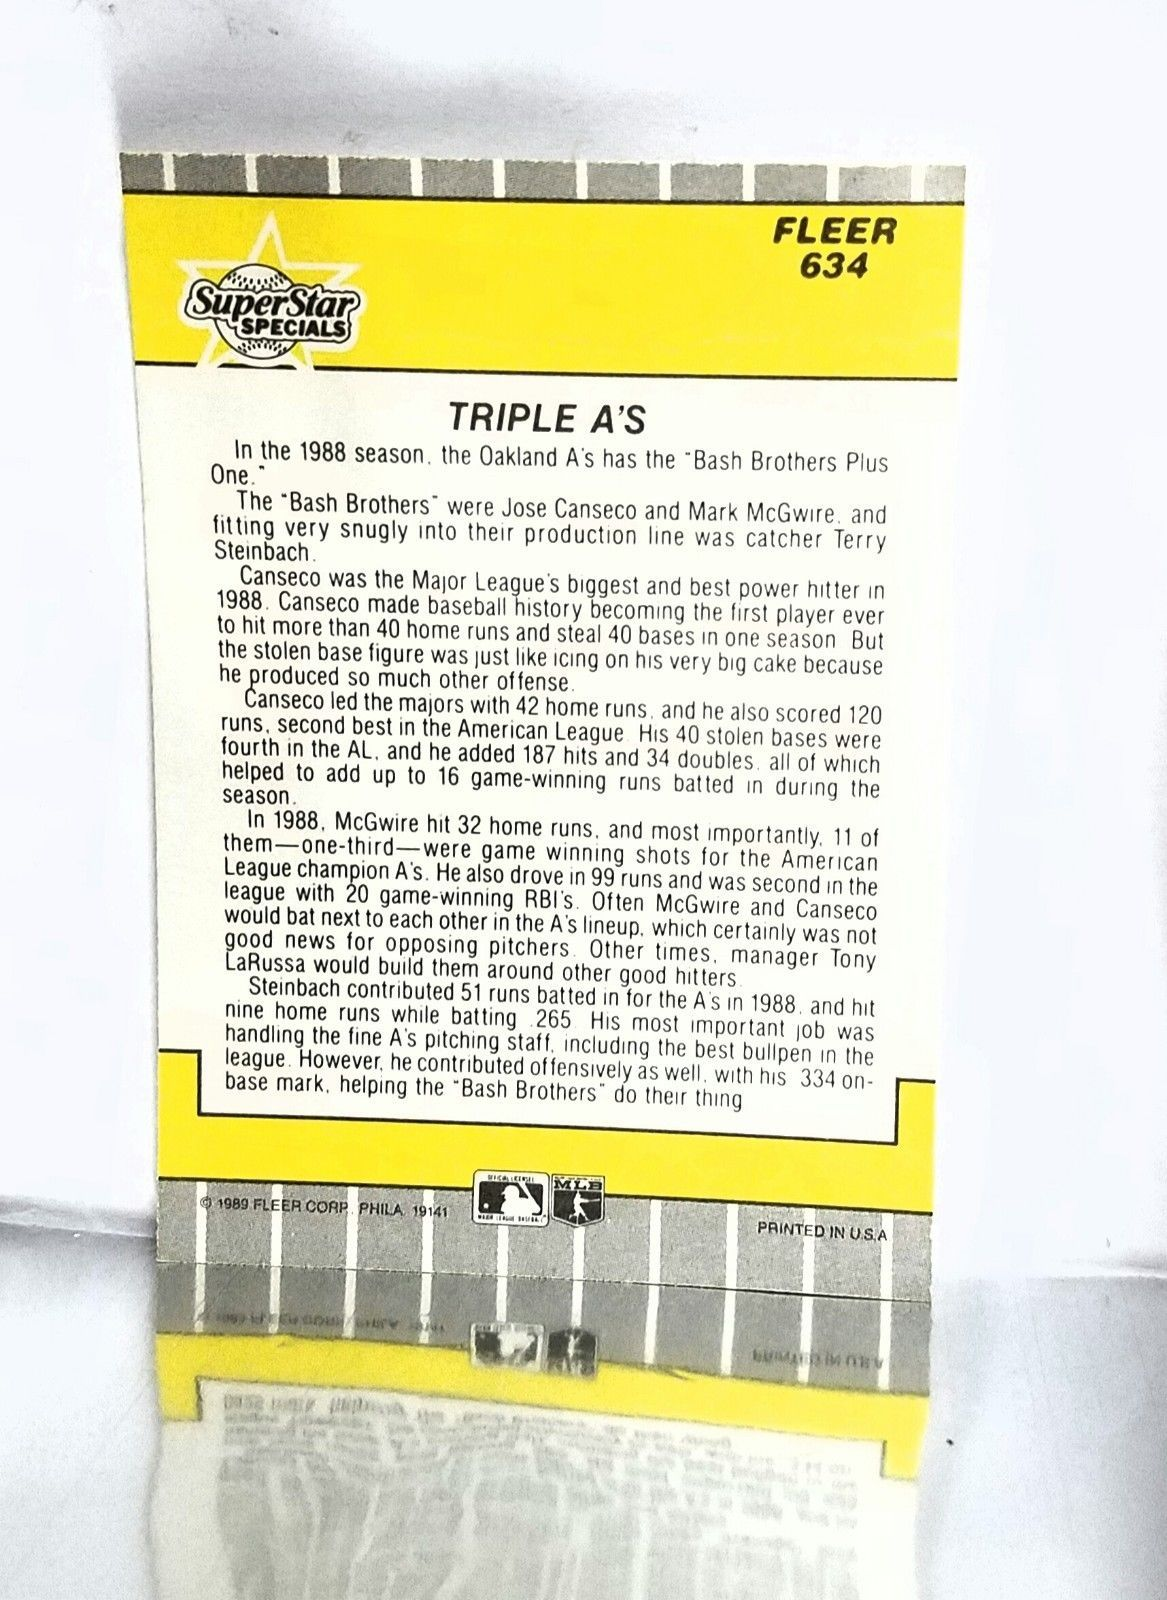 1989 Fleer # 634 Triple A's Canseco, McGwire & Steinbach SuperStar Specials NM+